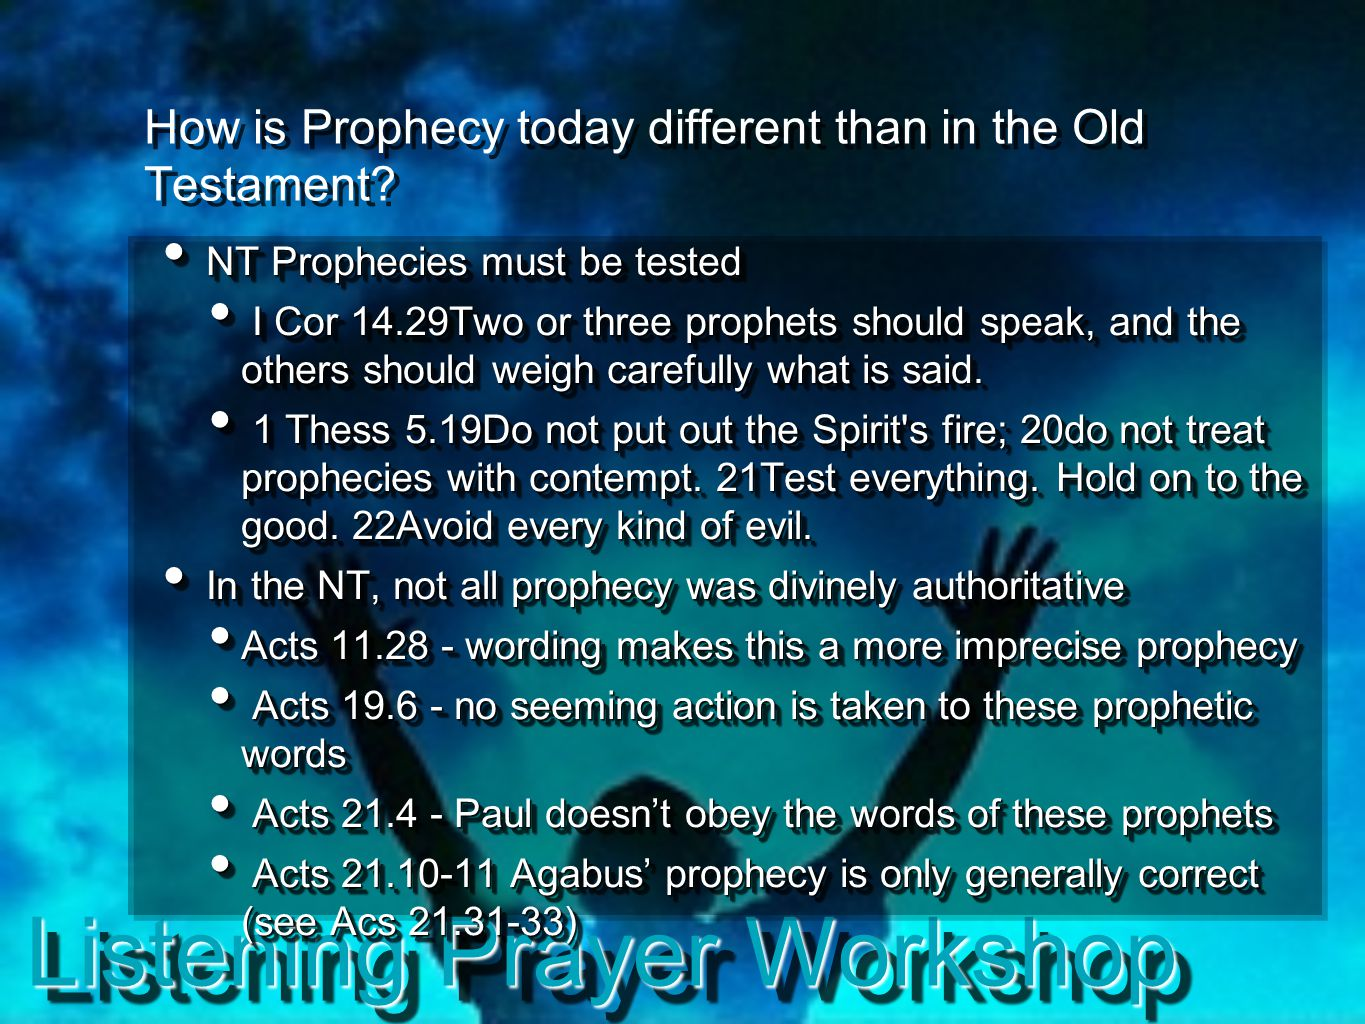 Listening Prayer Workshop How is Prophecy today different than in the Old Testament? NT Prophecies must be tested NT Prophecies must be tested I Cor 1